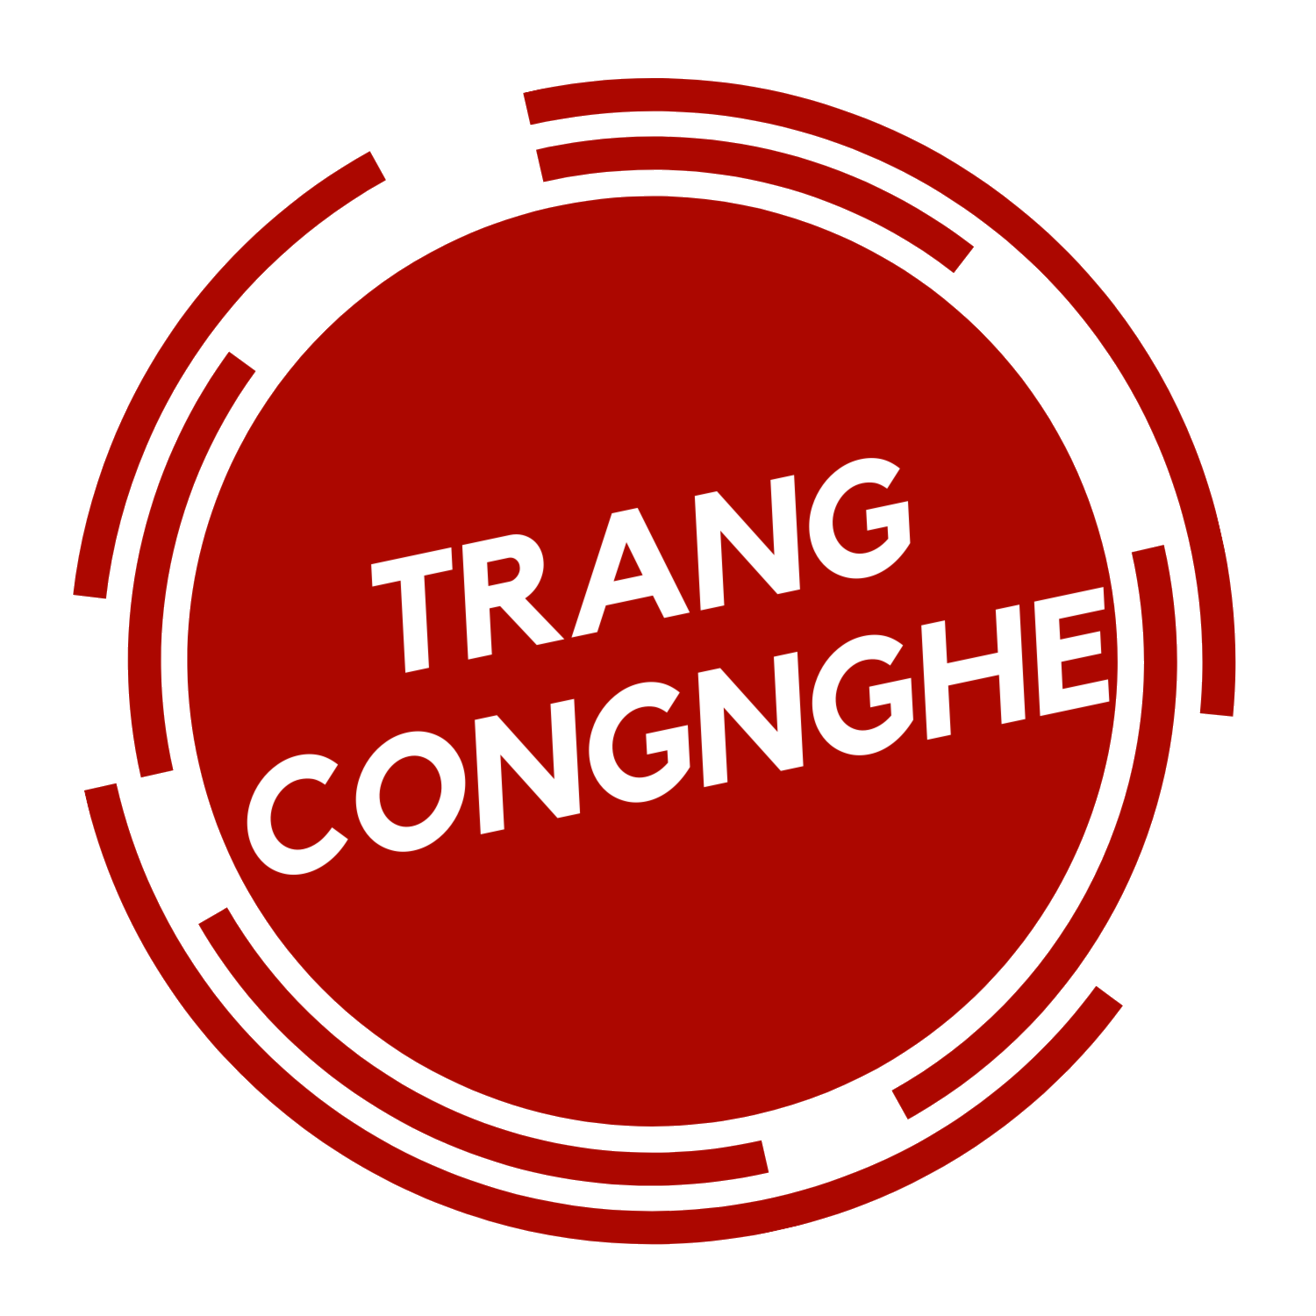 TrangCongNghe - Share travel news